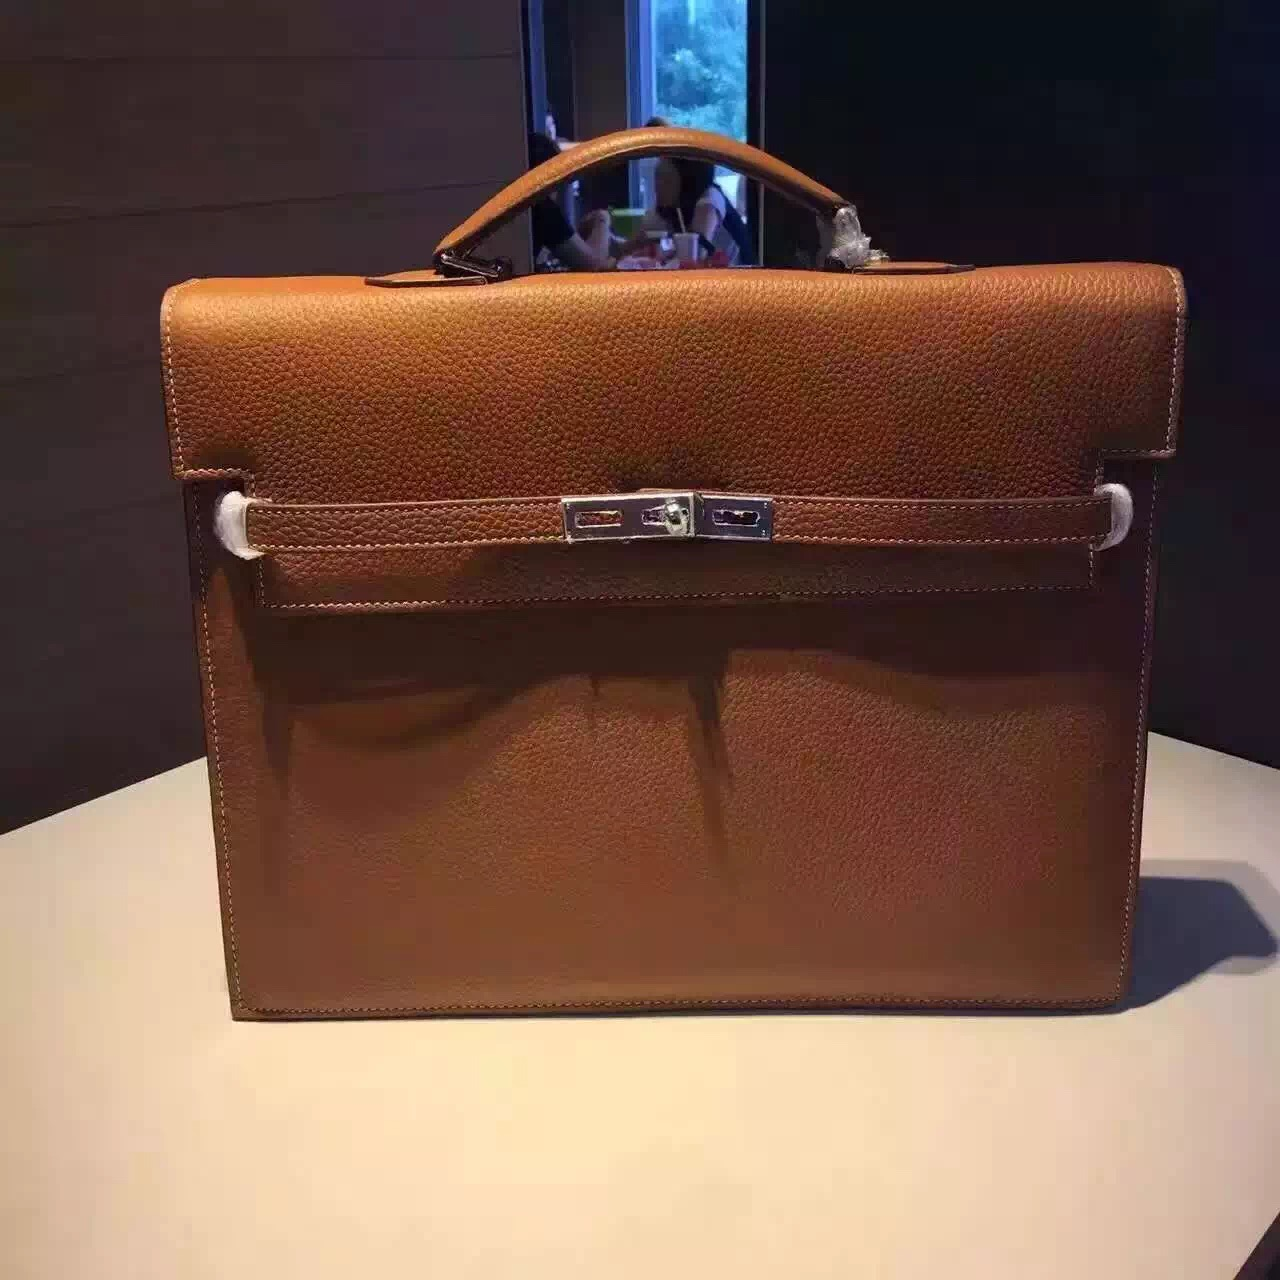 2017 Hermes Kelly Depeche Clemence Leather Briefcase White Gold